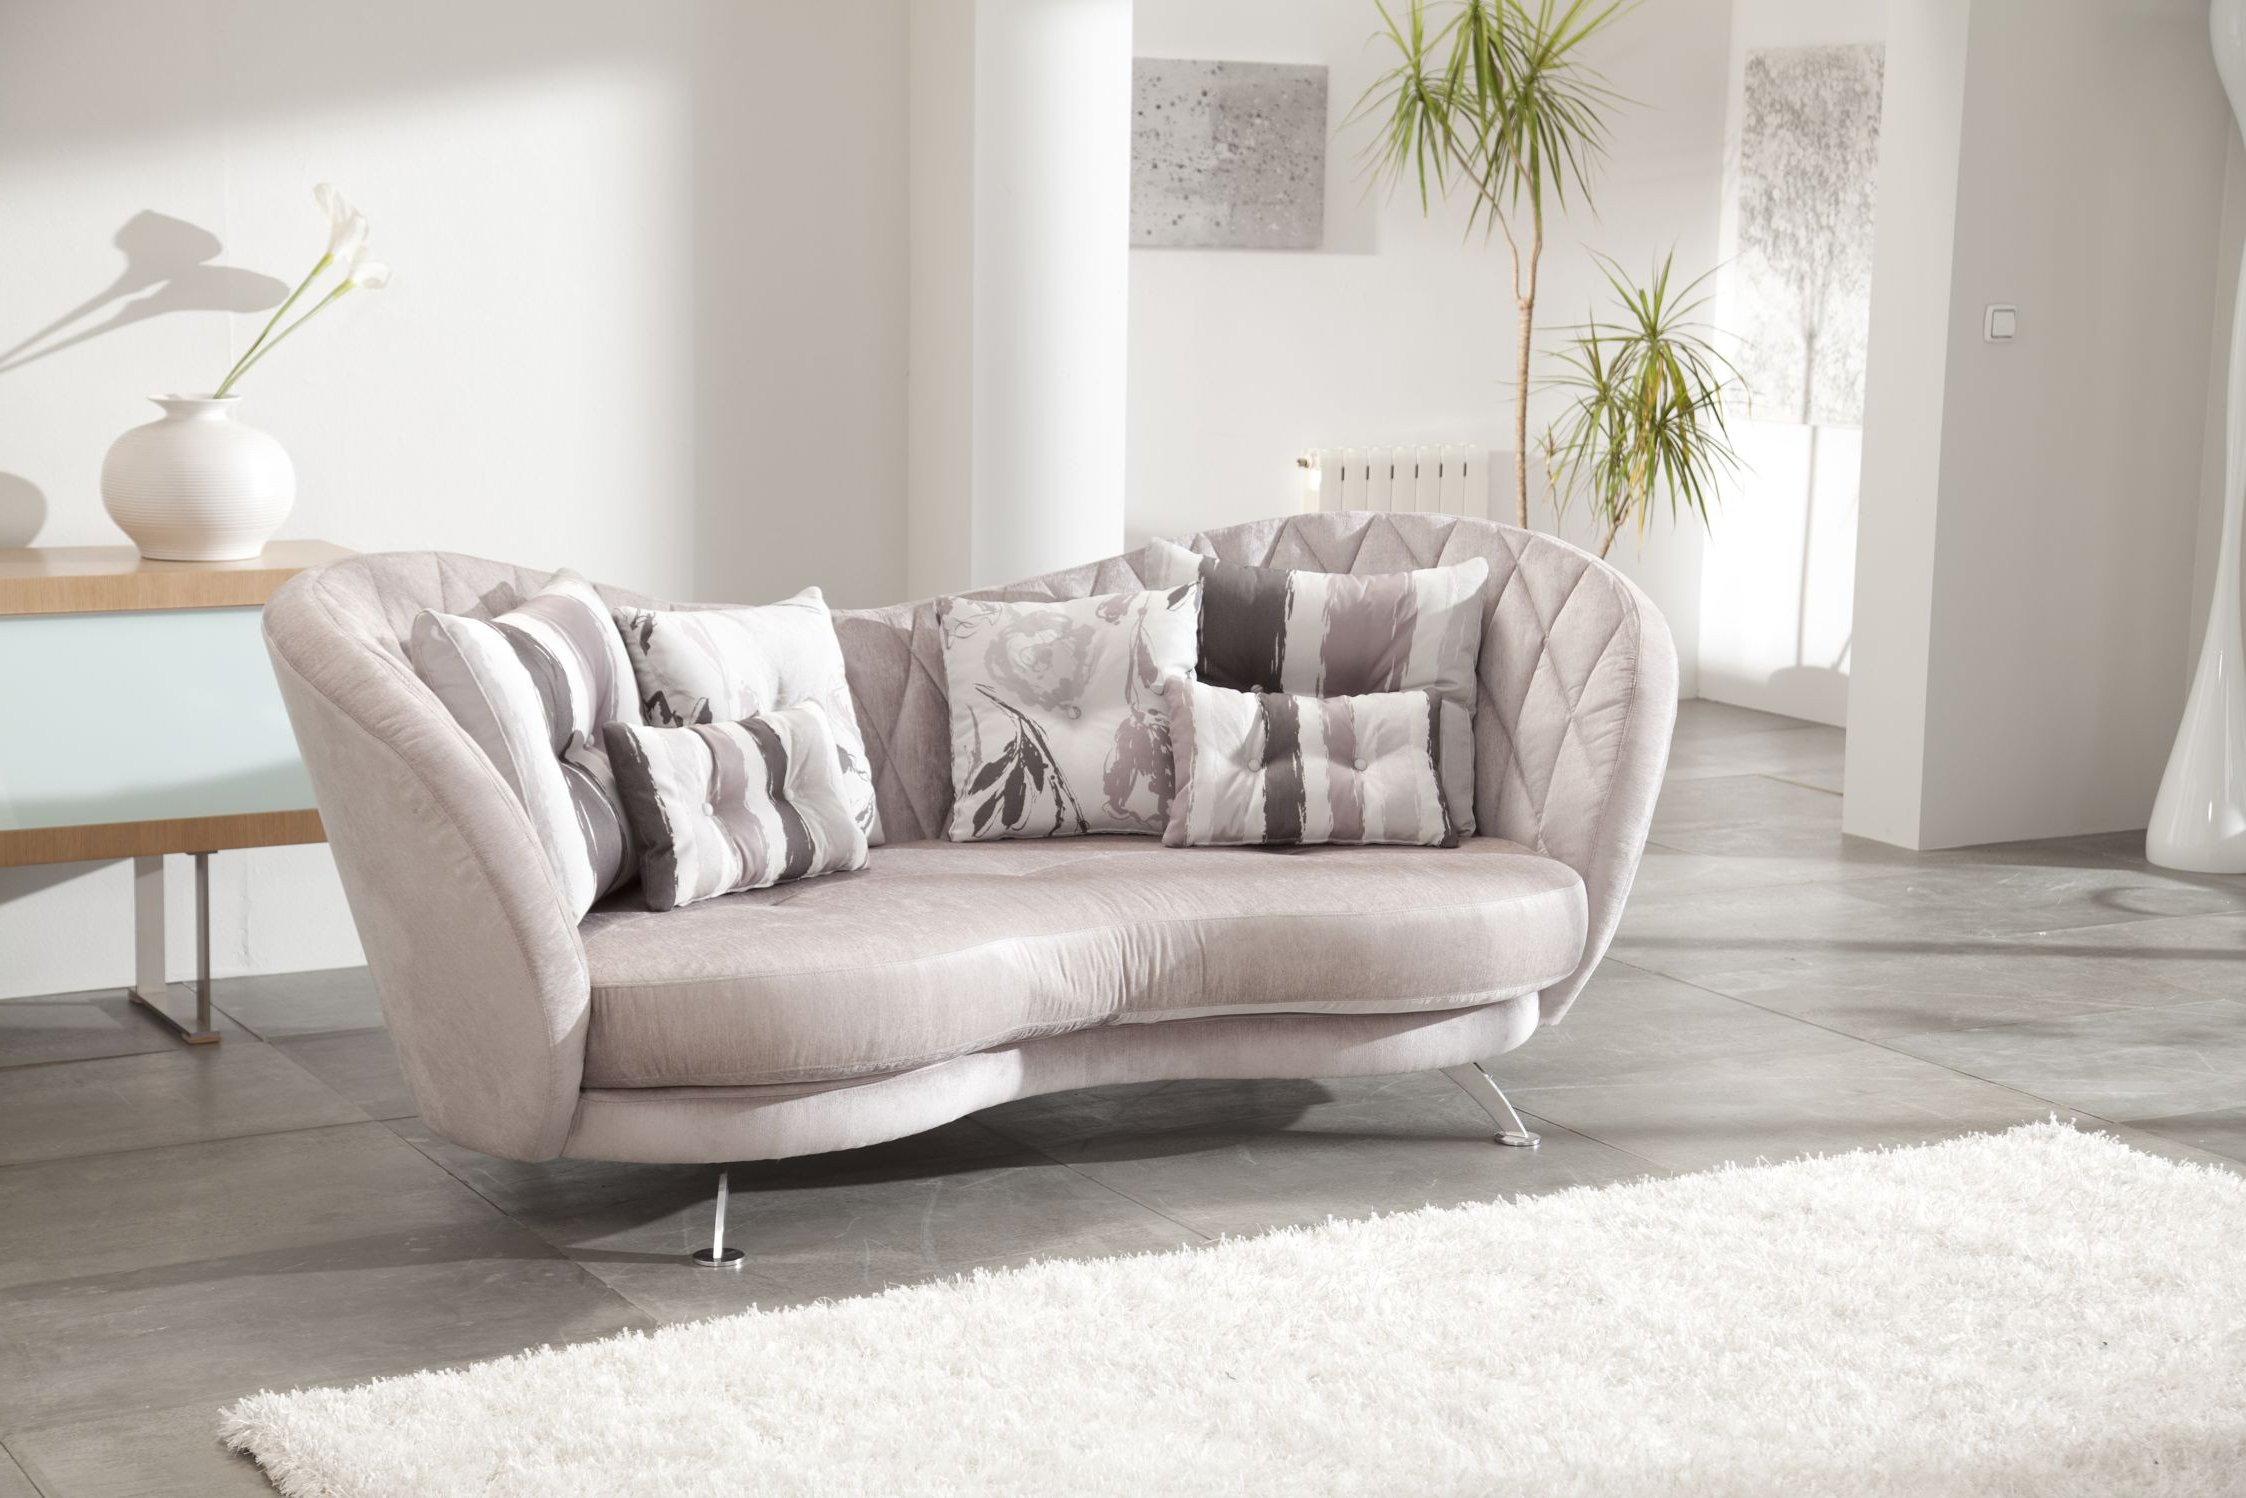 Fama Sofas Pertaining To Most Current Josephine Sofa Chairs (Gallery 17 of 20)